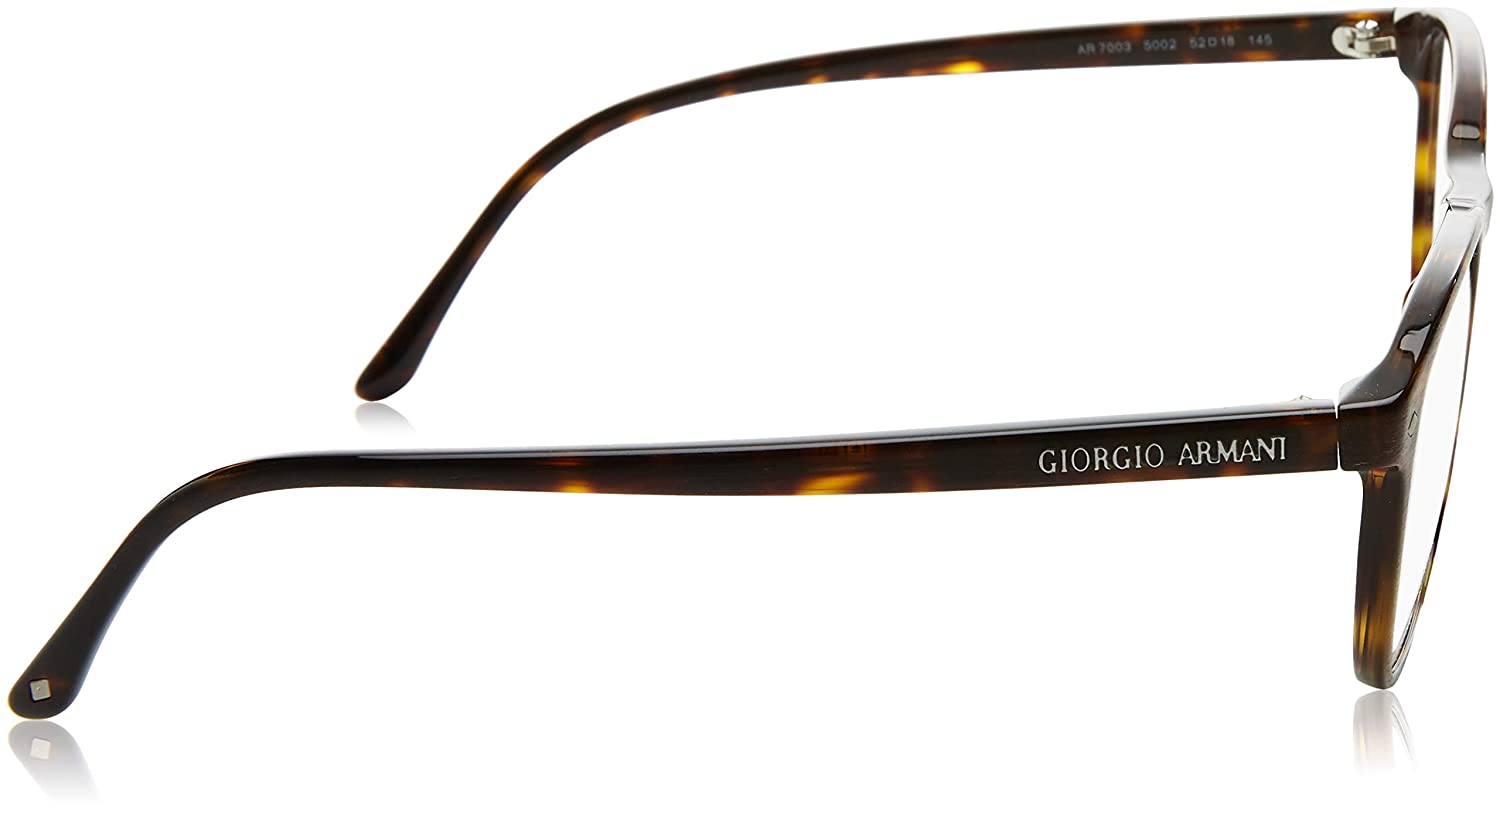 25d84c82e7d Giorgio Armani Eyeglasses AR 7003 HAVANA 5002 AR7003 at Amazon Women s  Clothing store  Eyewear